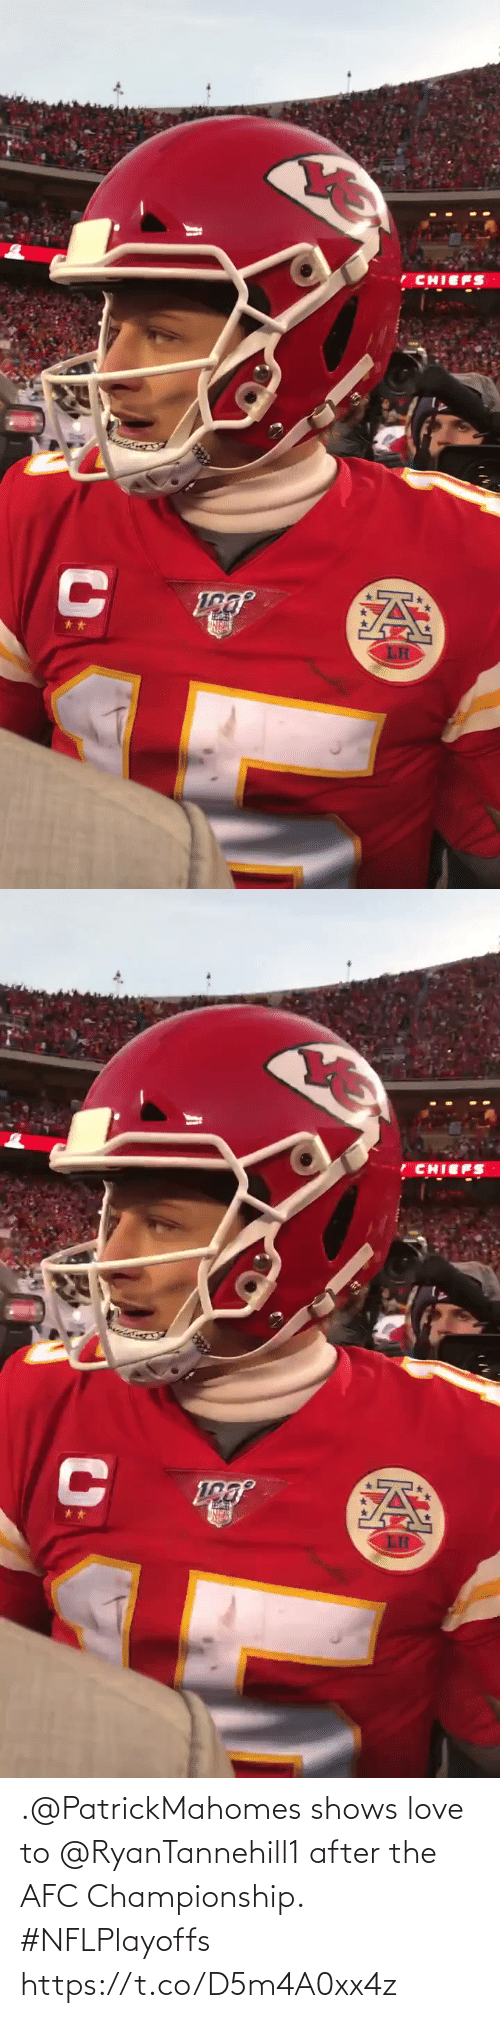 Afc Championship: .@PatrickMahomes shows love to @RyanTannehill1 after the AFC Championship. #NFLPlayoffs https://t.co/D5m4A0xx4z